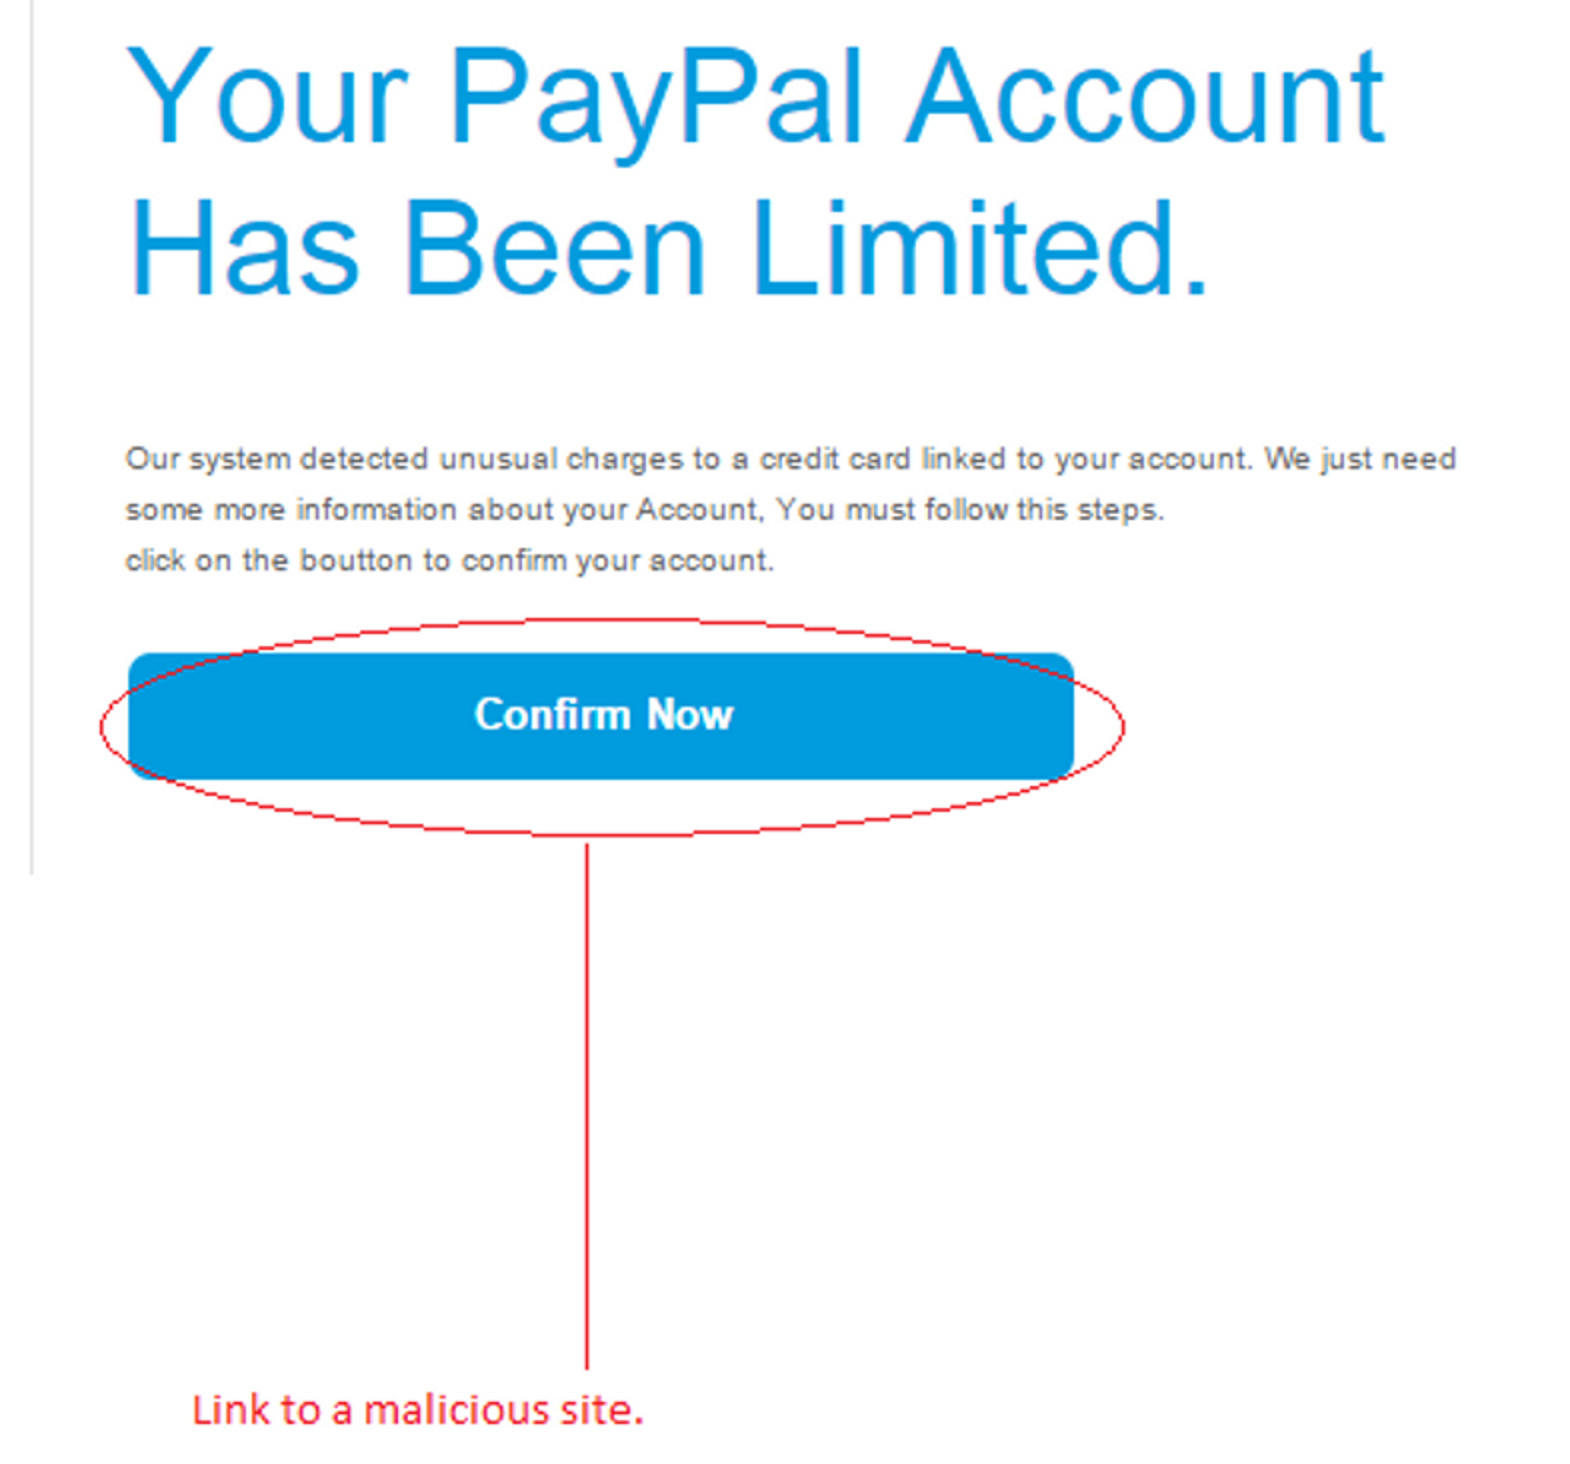 MailShark Unusual credit card charges warns fake email